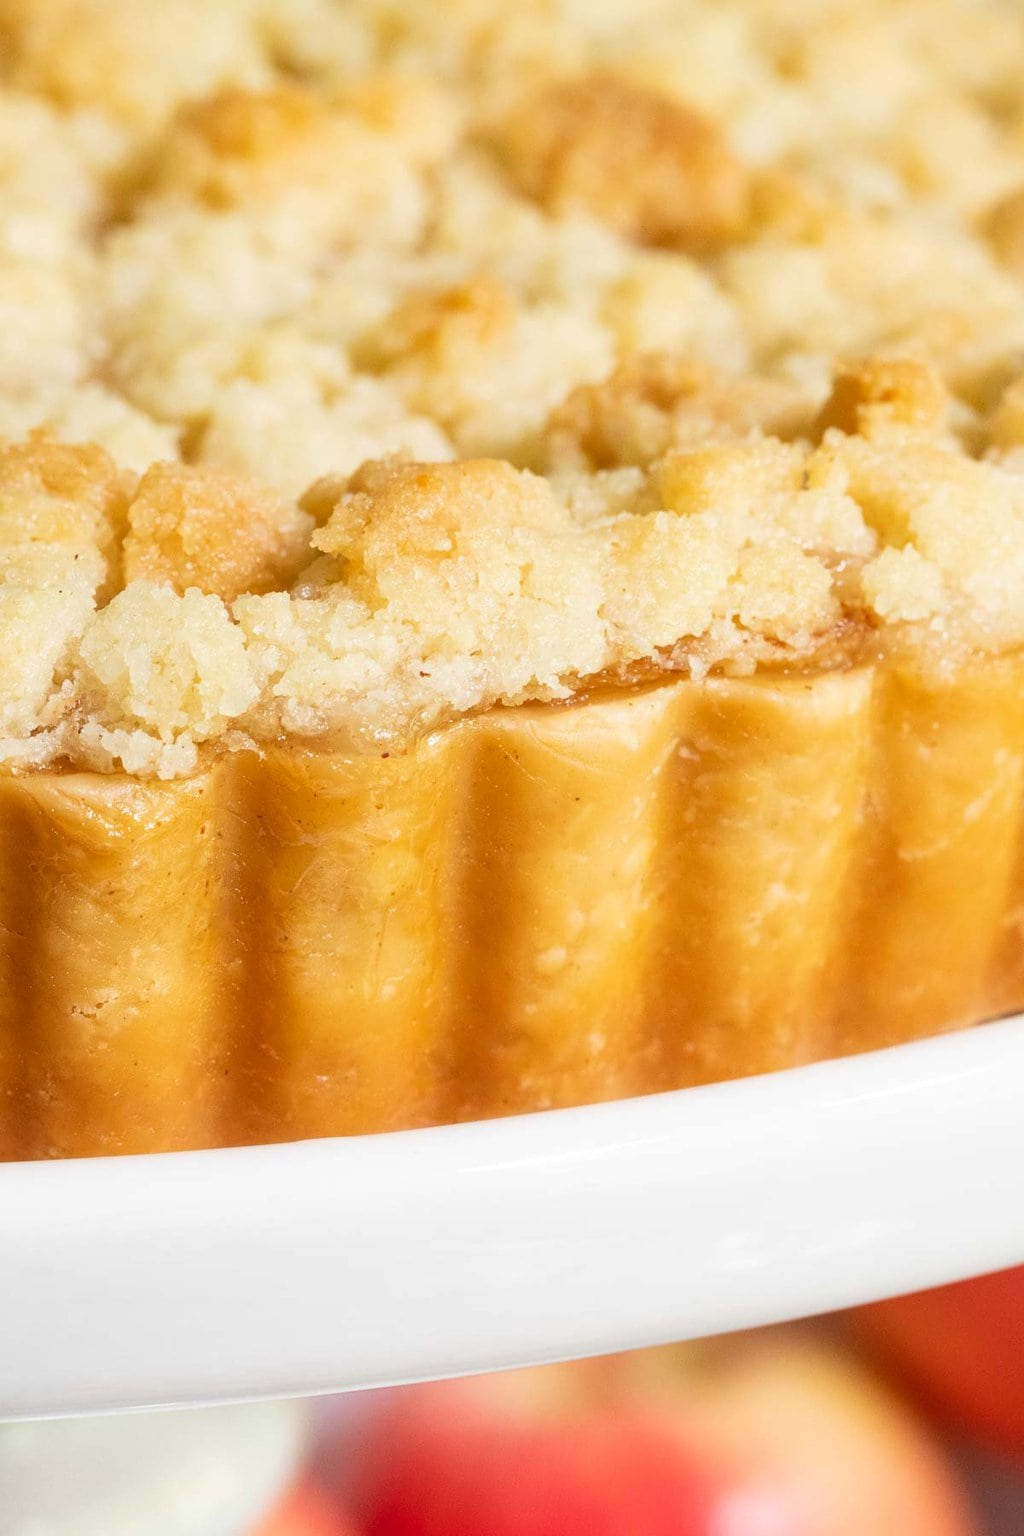 Vertical extreme closeup photo of an Easy French Apple Tart.